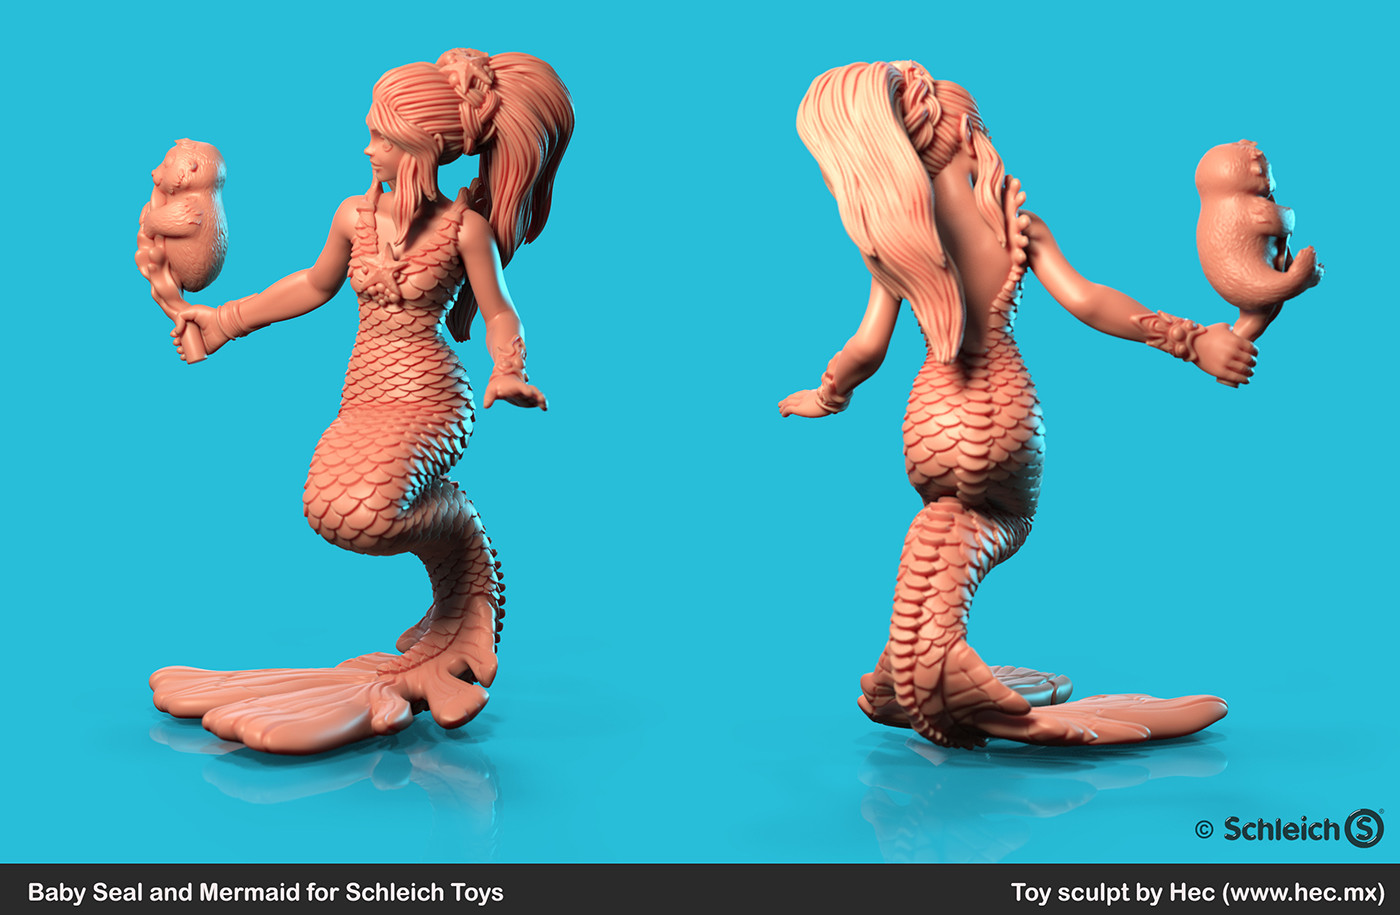 Hector moran hec sealmermaid 01 renders